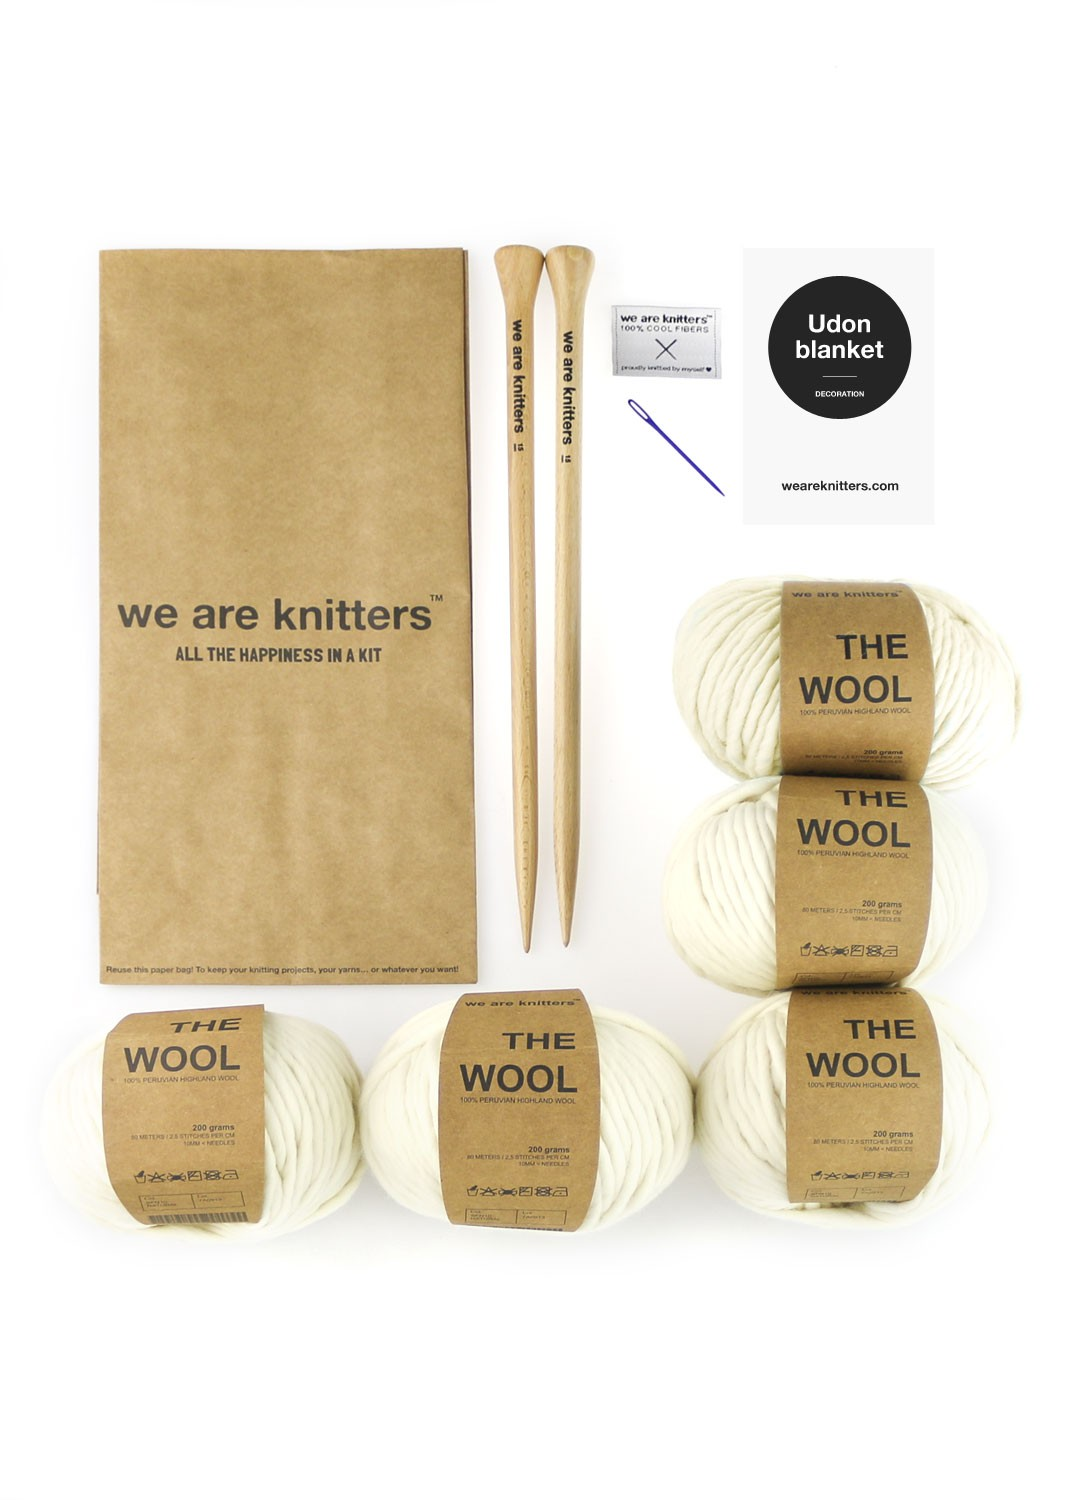 Kit Udon Blanket. Así son los kits de We Are Knitters.